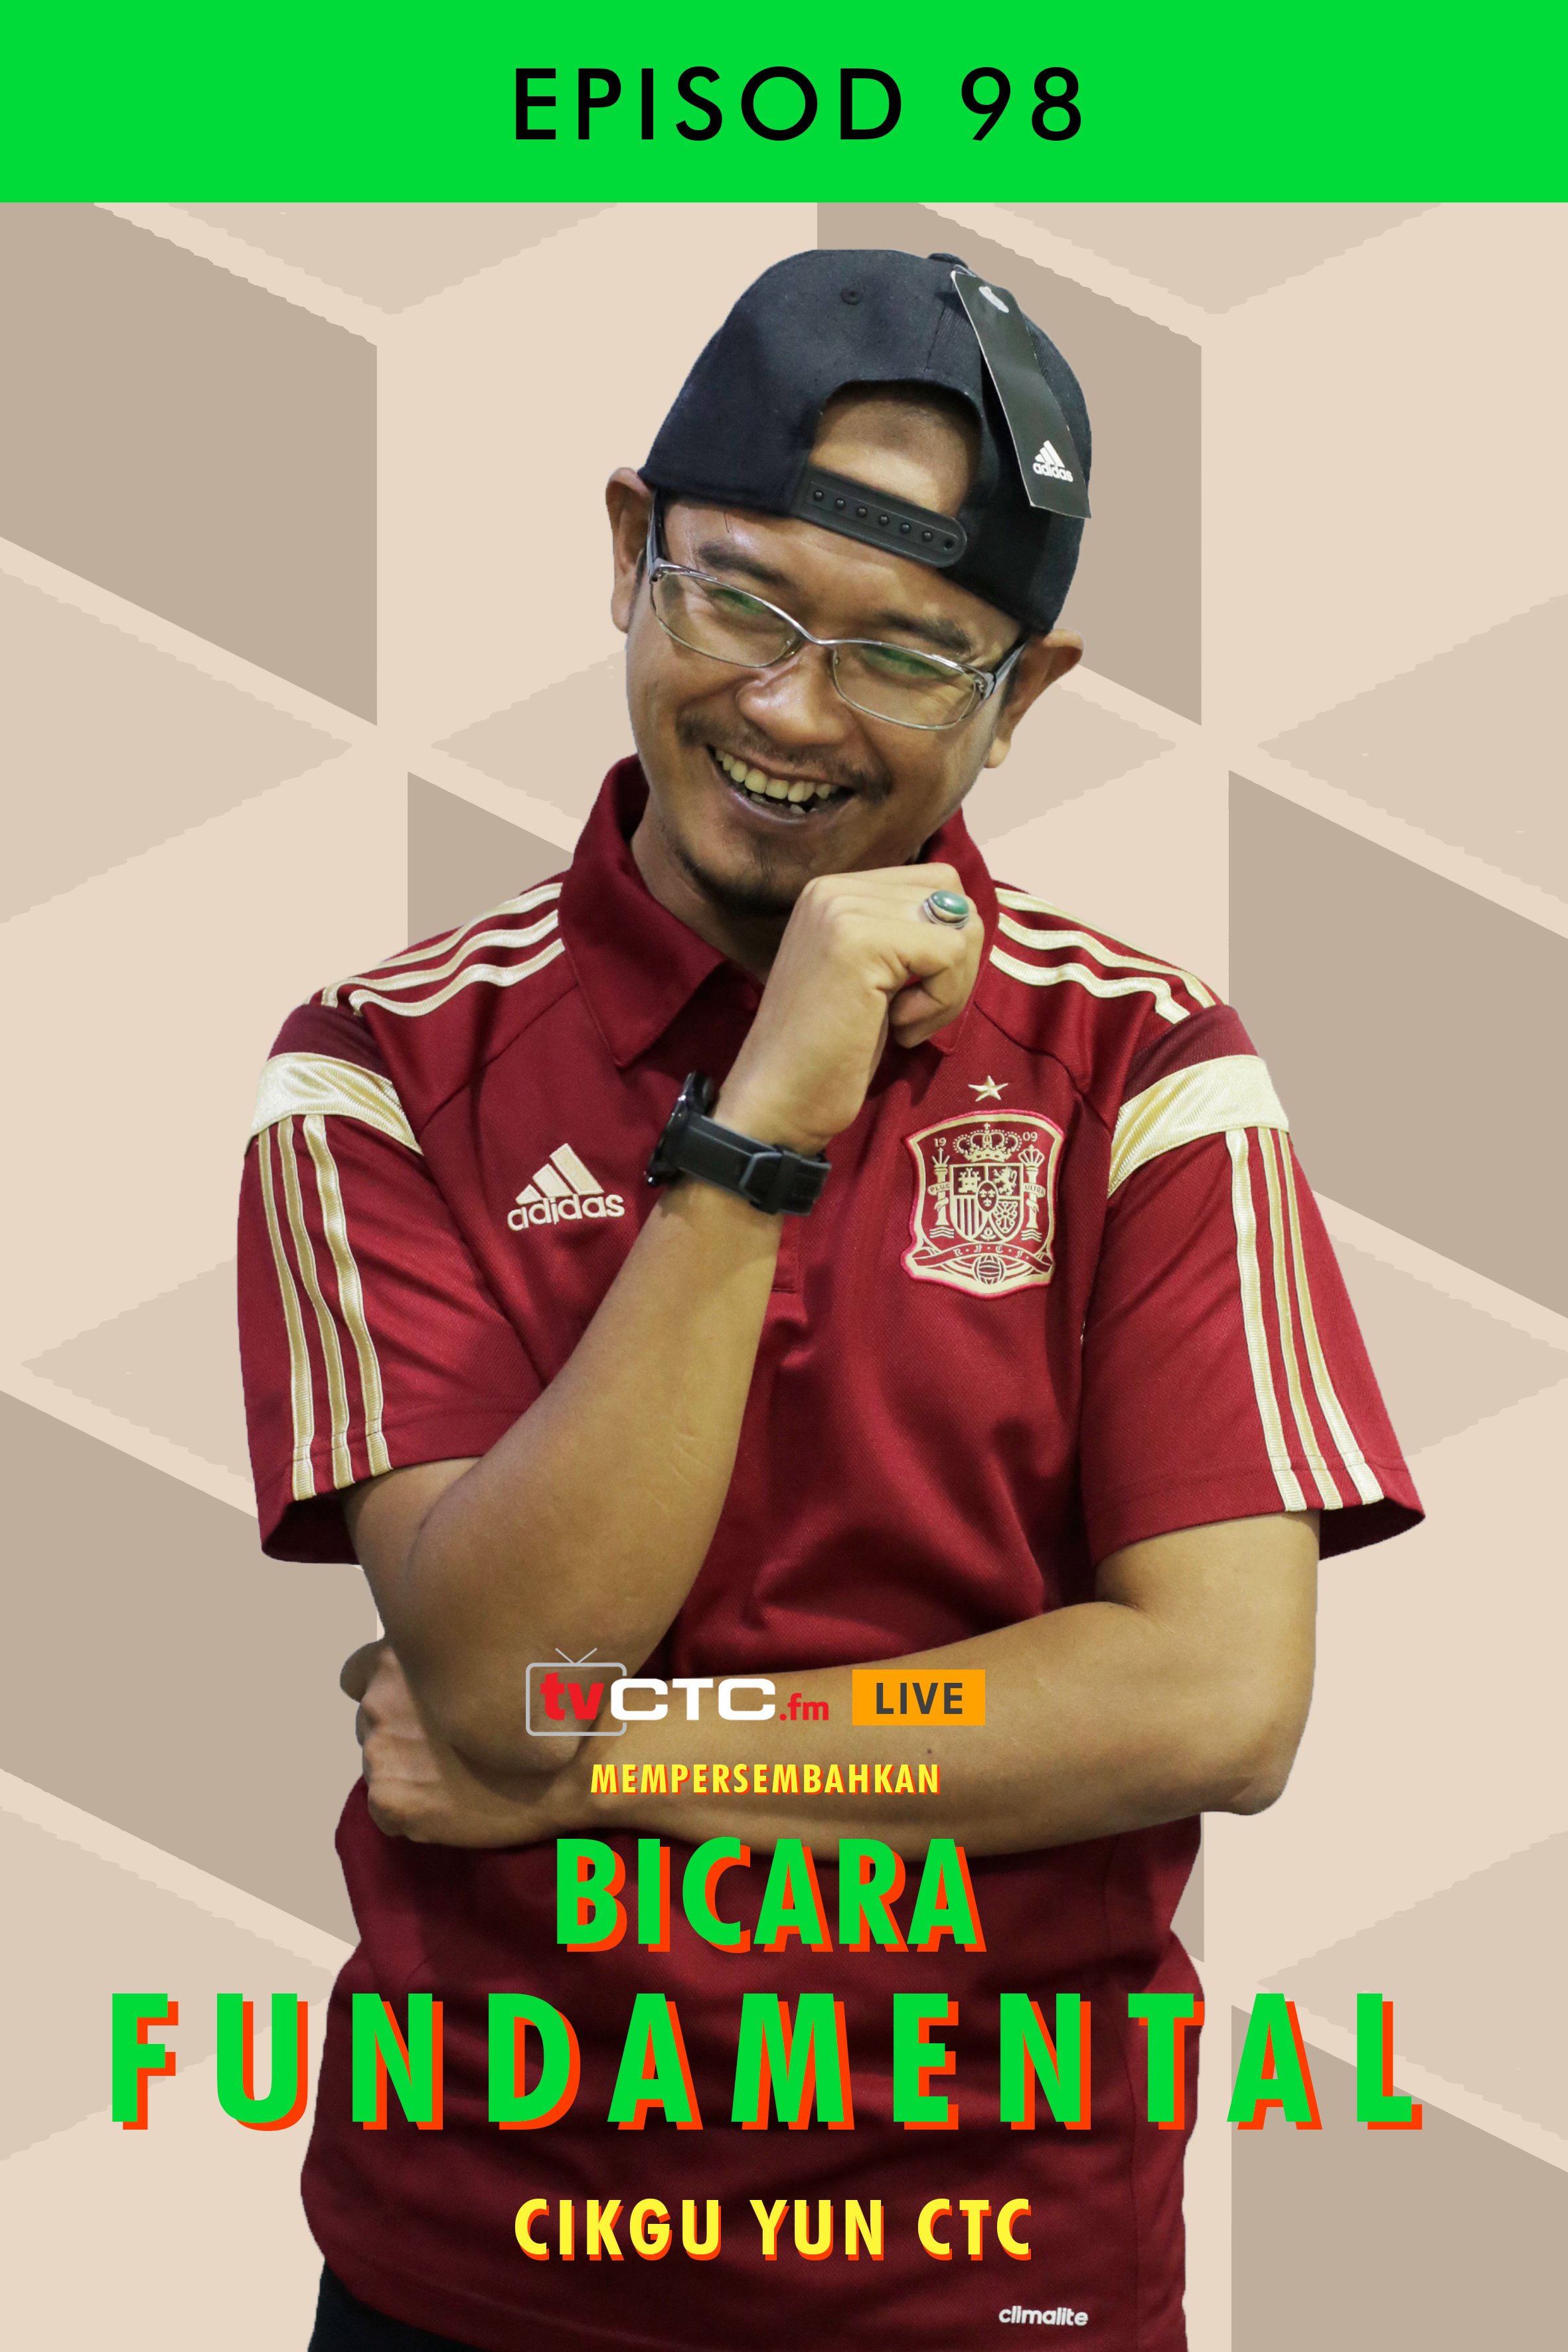 BICARA FUNDAMENTAL : Fundamental (Episod 98)